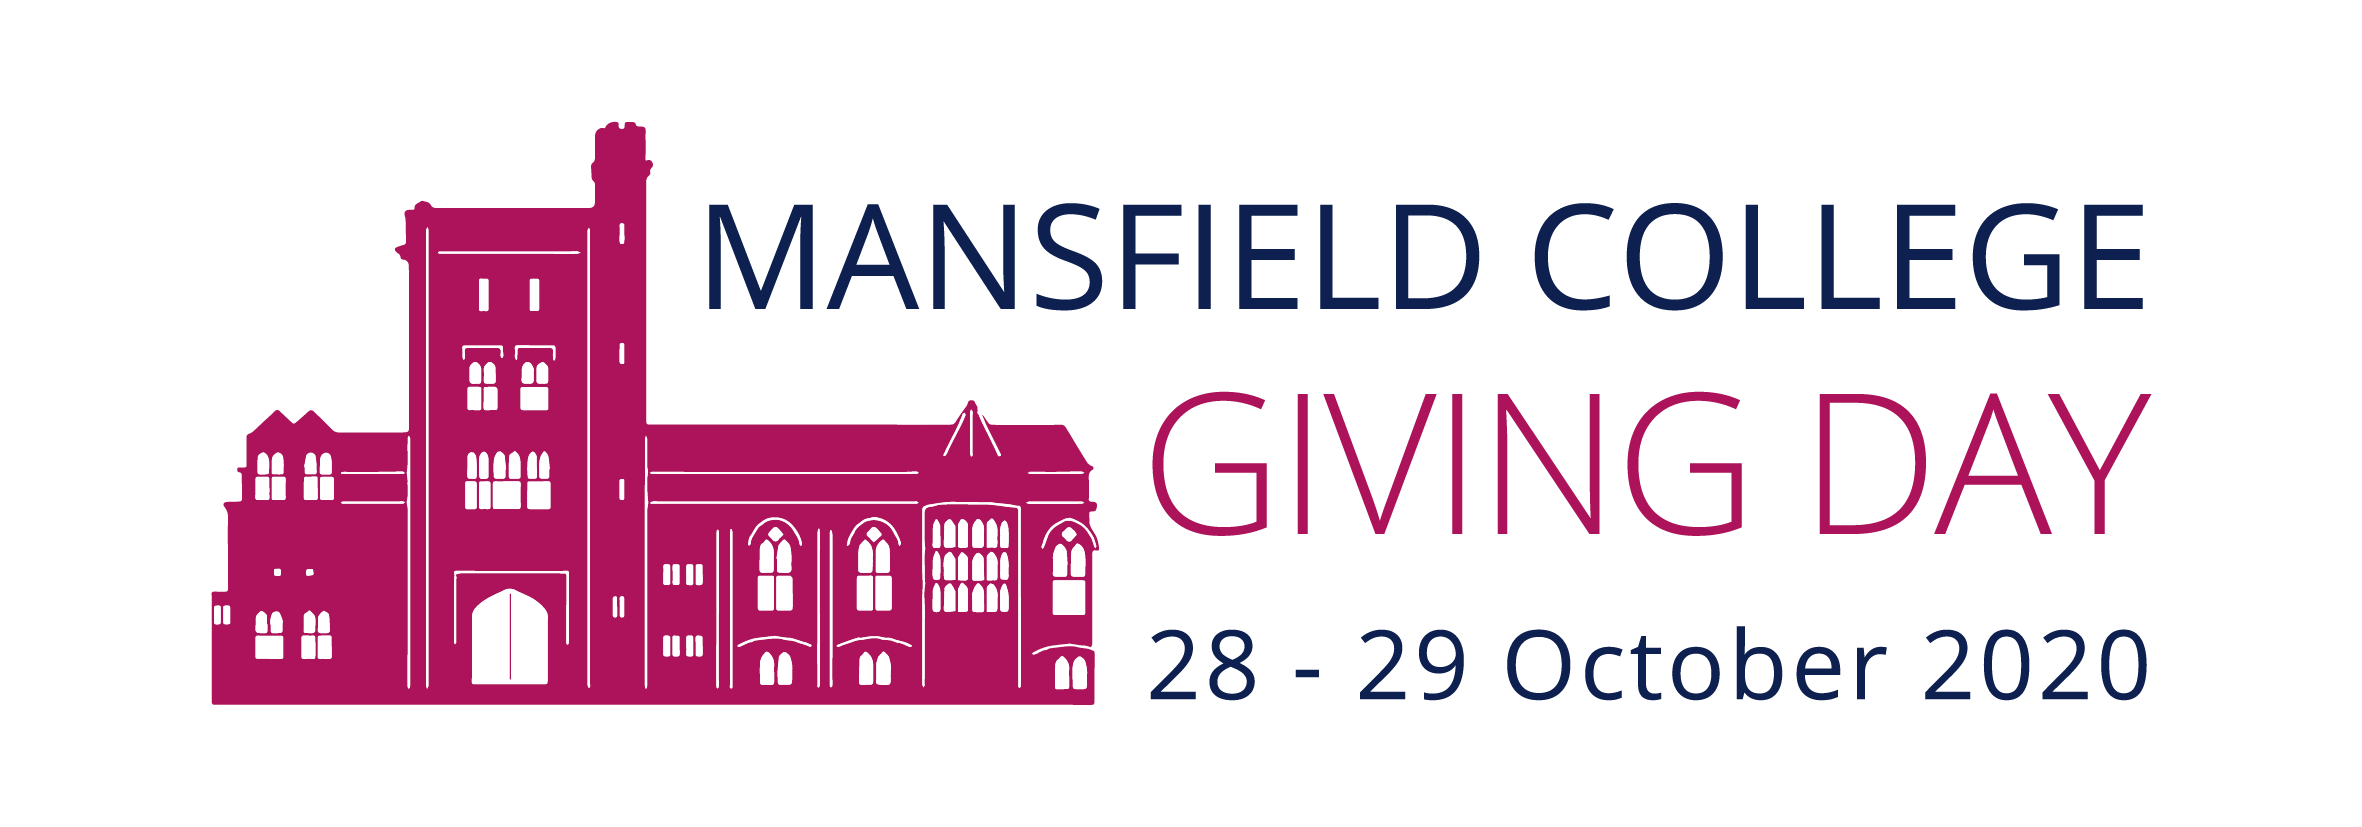 Mansfield College Giving Day logo